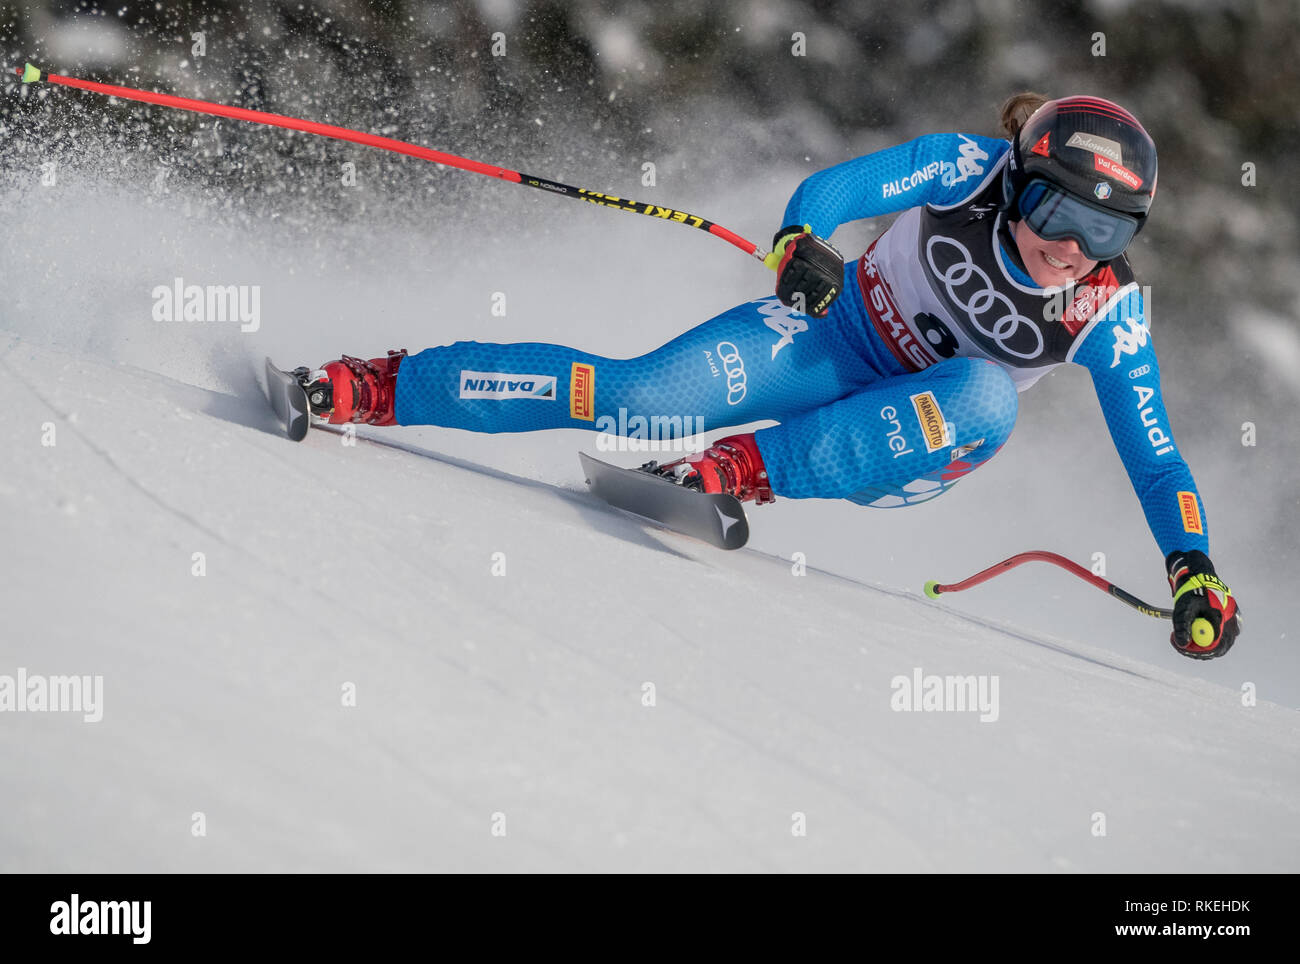 Are, Sweden. 10th Feb, 2019. Alpine skiing, world championship, downhill, ladies: Nicol Delago from Italy on the racetrack. Credit: Michael Kappeler/dpa/Alamy Live News - Stock Image